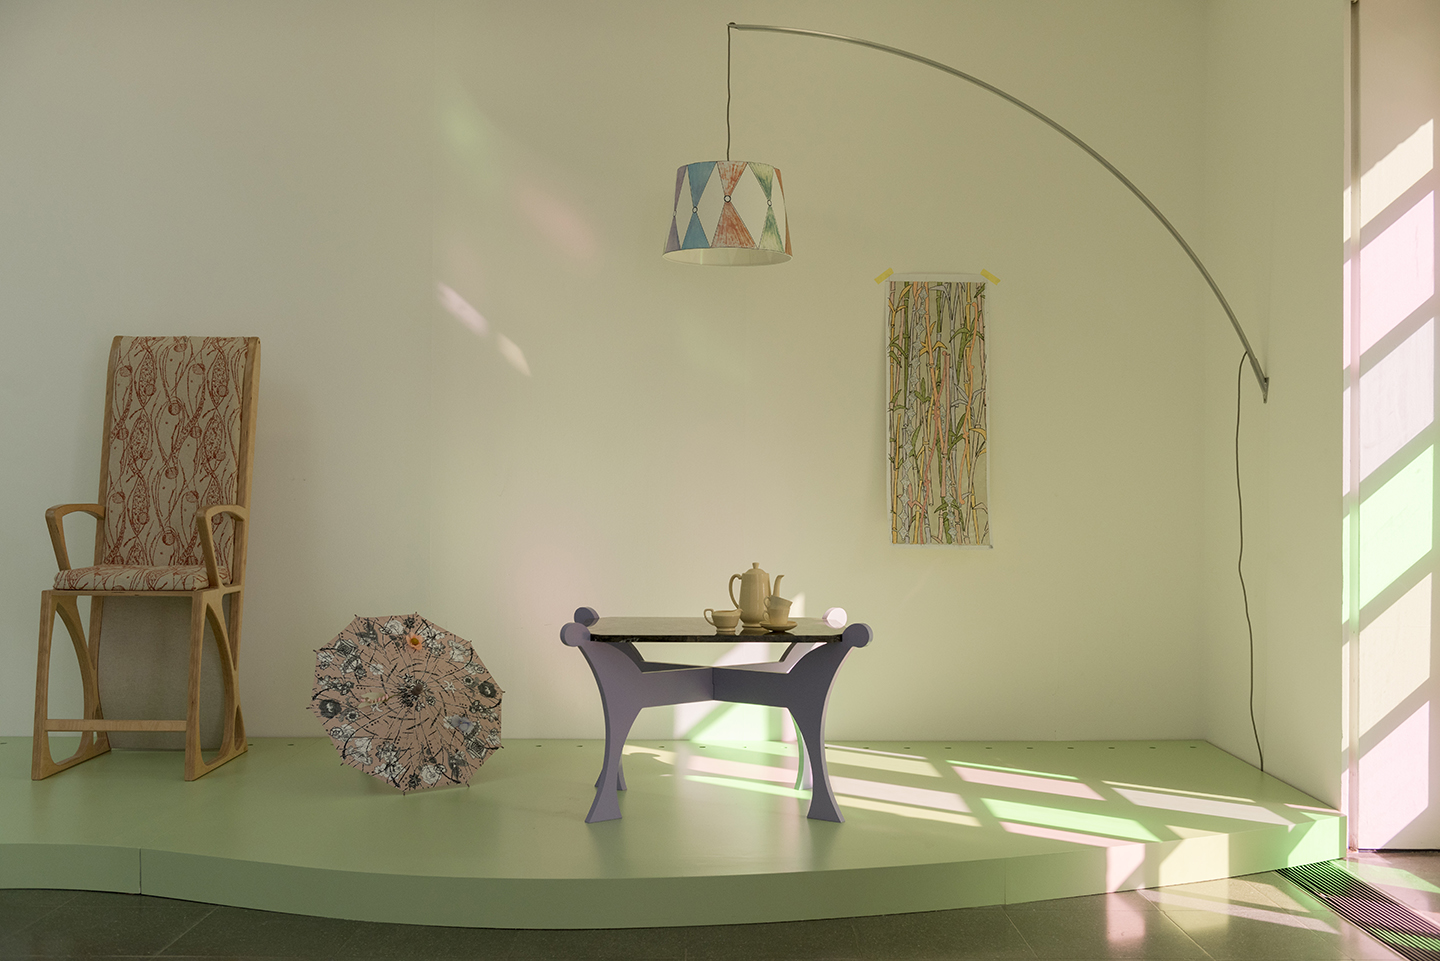 Marc Camille Chaimowicz An Autumn Lexicon At Serpentine Gallery